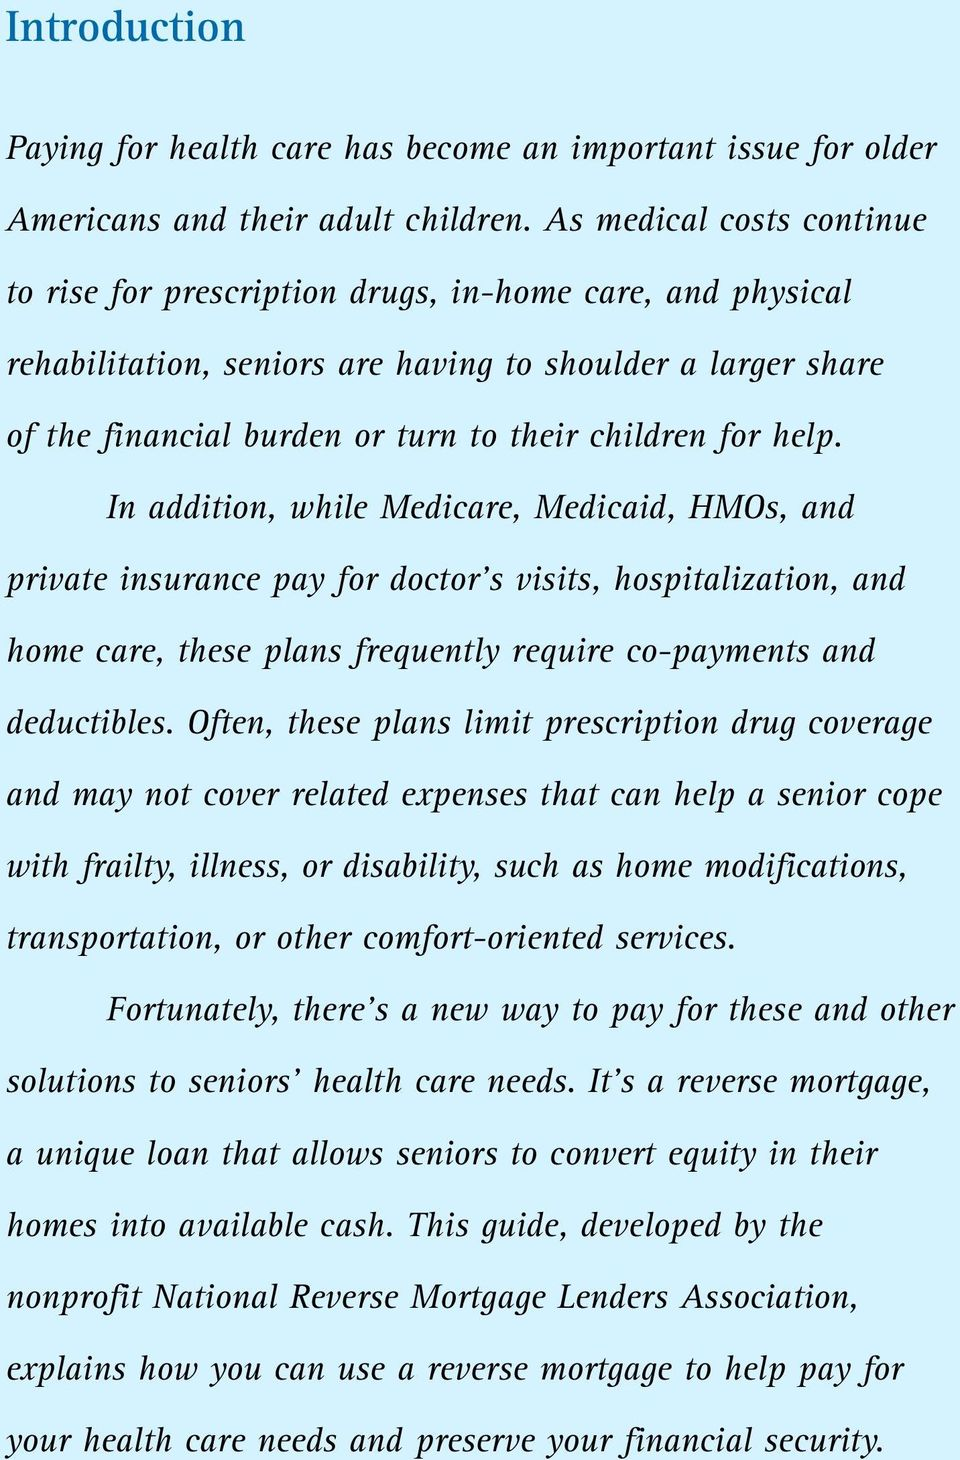 for help. In addition, while Medicare, Medicaid, HMOs, and private insurance pay for doctor s visits, hospitalization, and home care, these plans frequently require co-payments and deductibles.